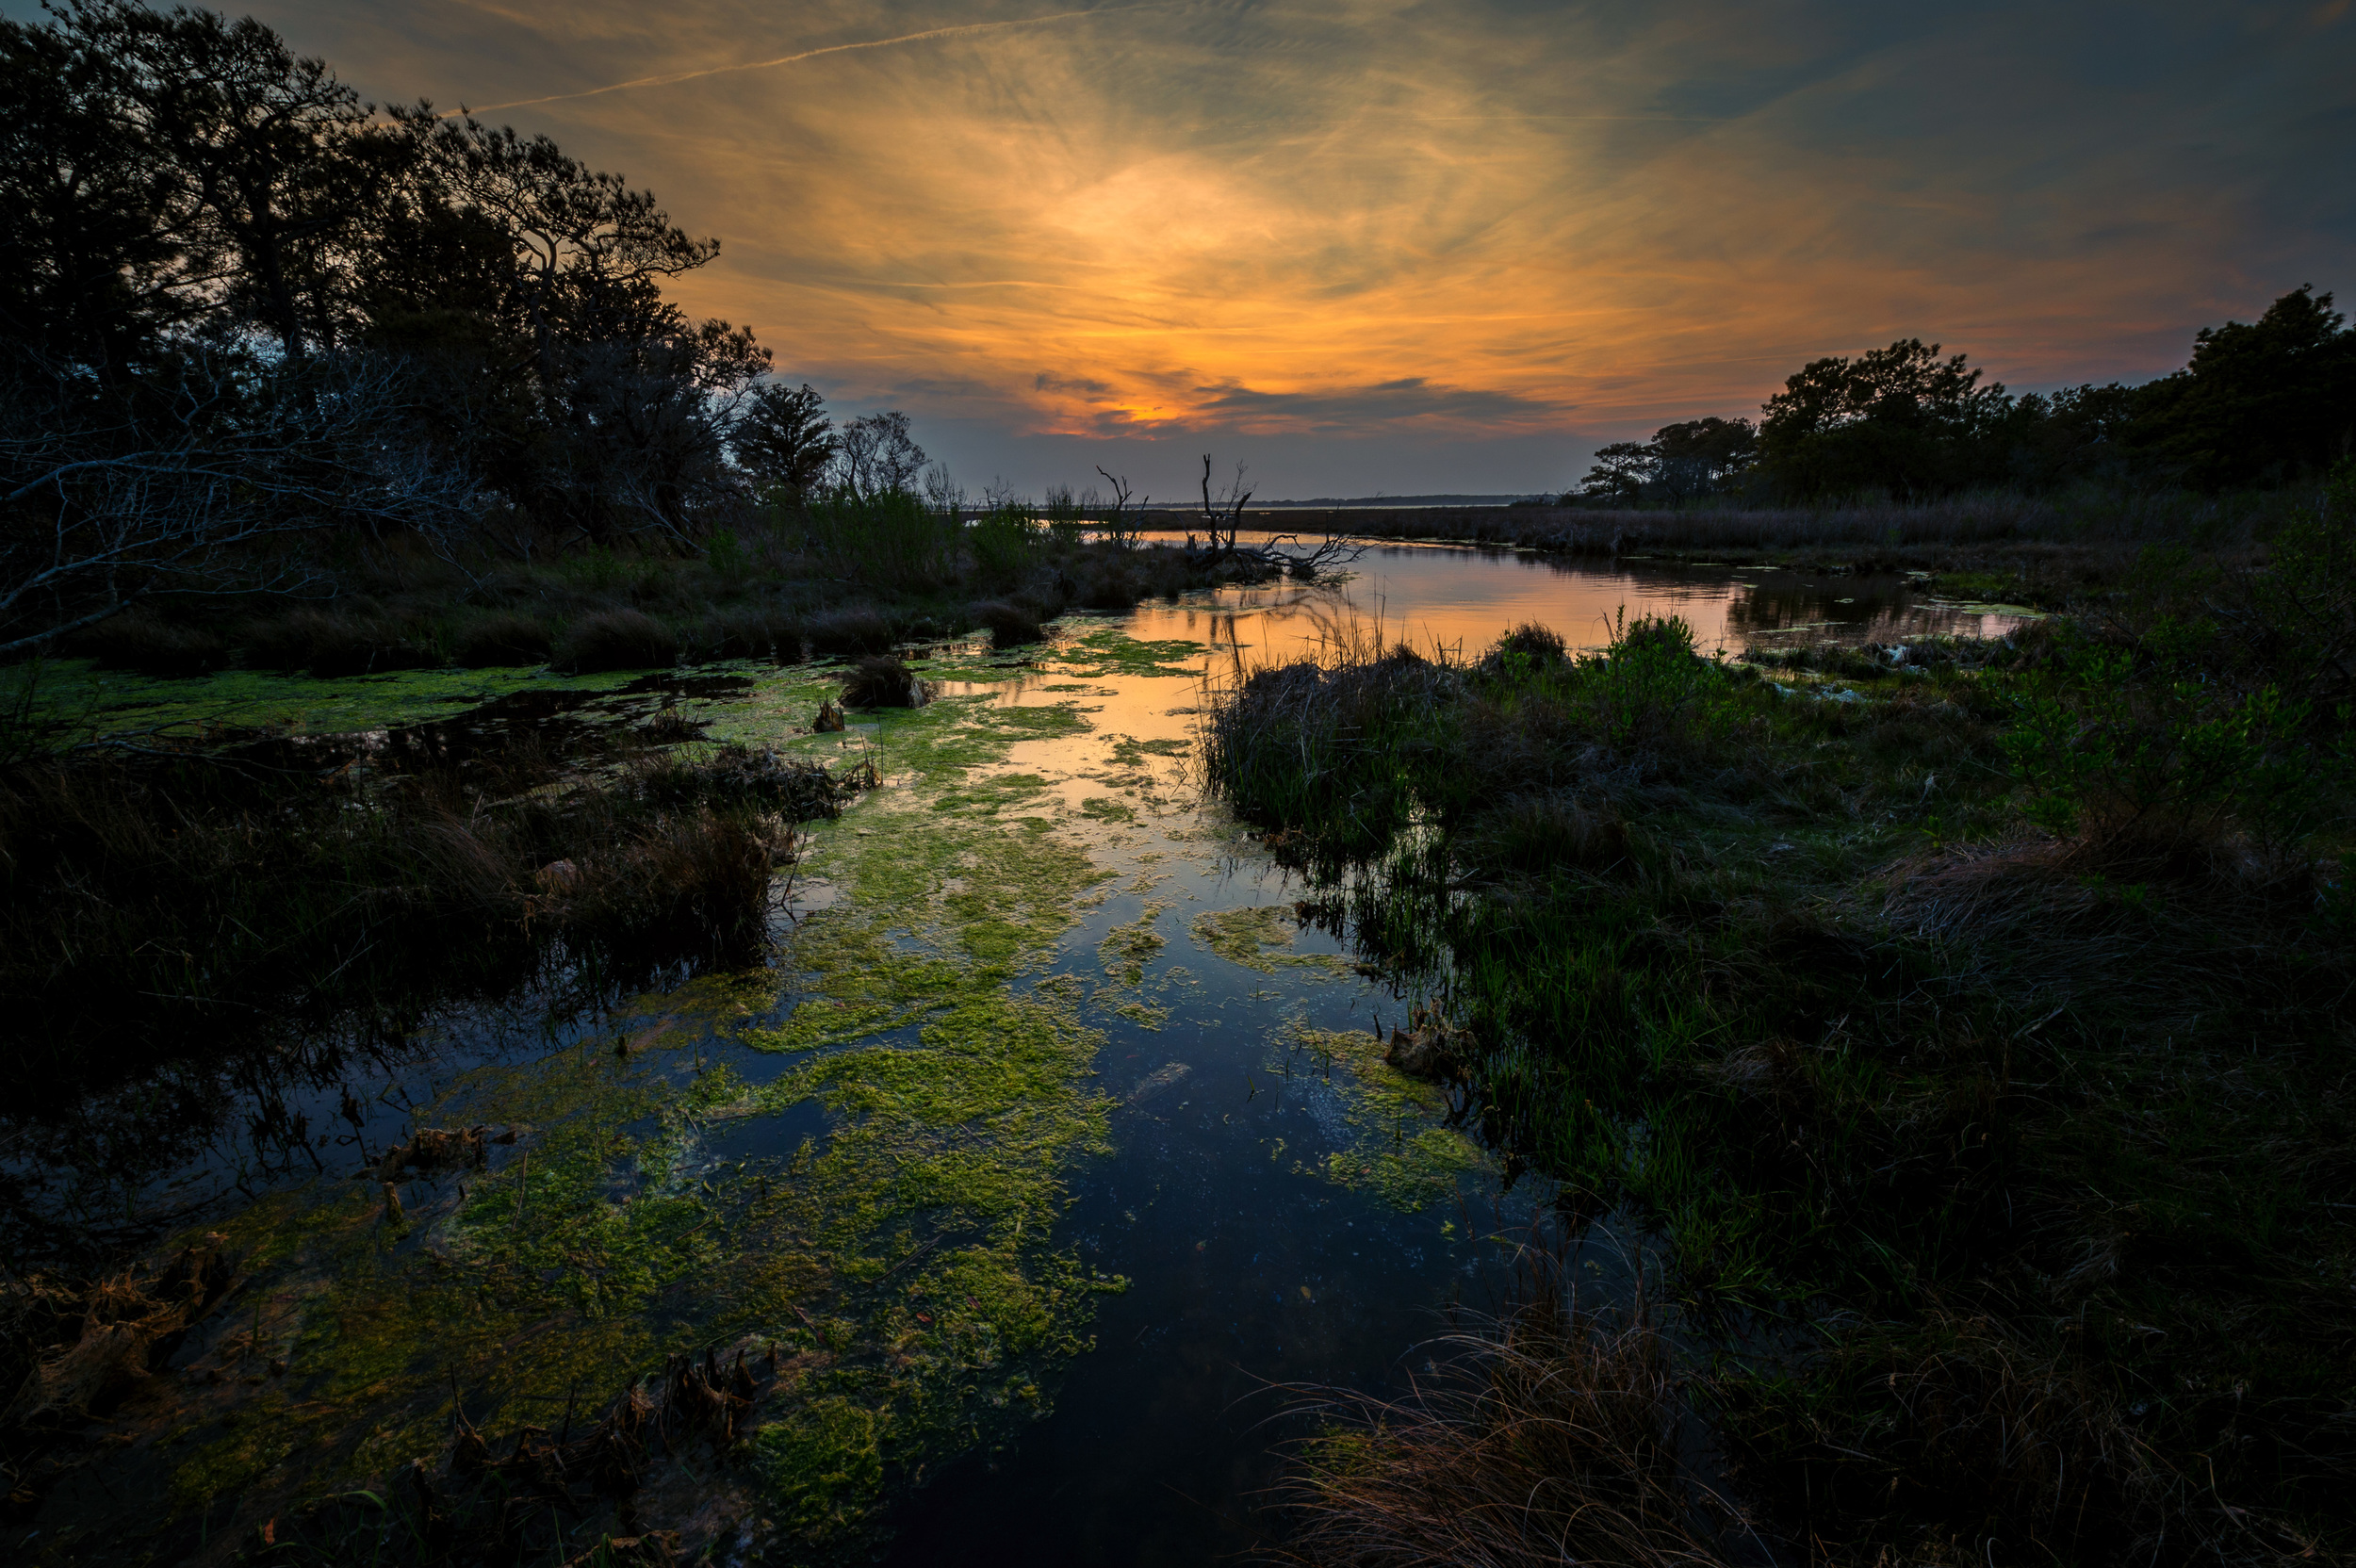 Assateague sunset. 1/10 @ f20, ISO 200. Nikon D4S, 14-24mm at 14mm.